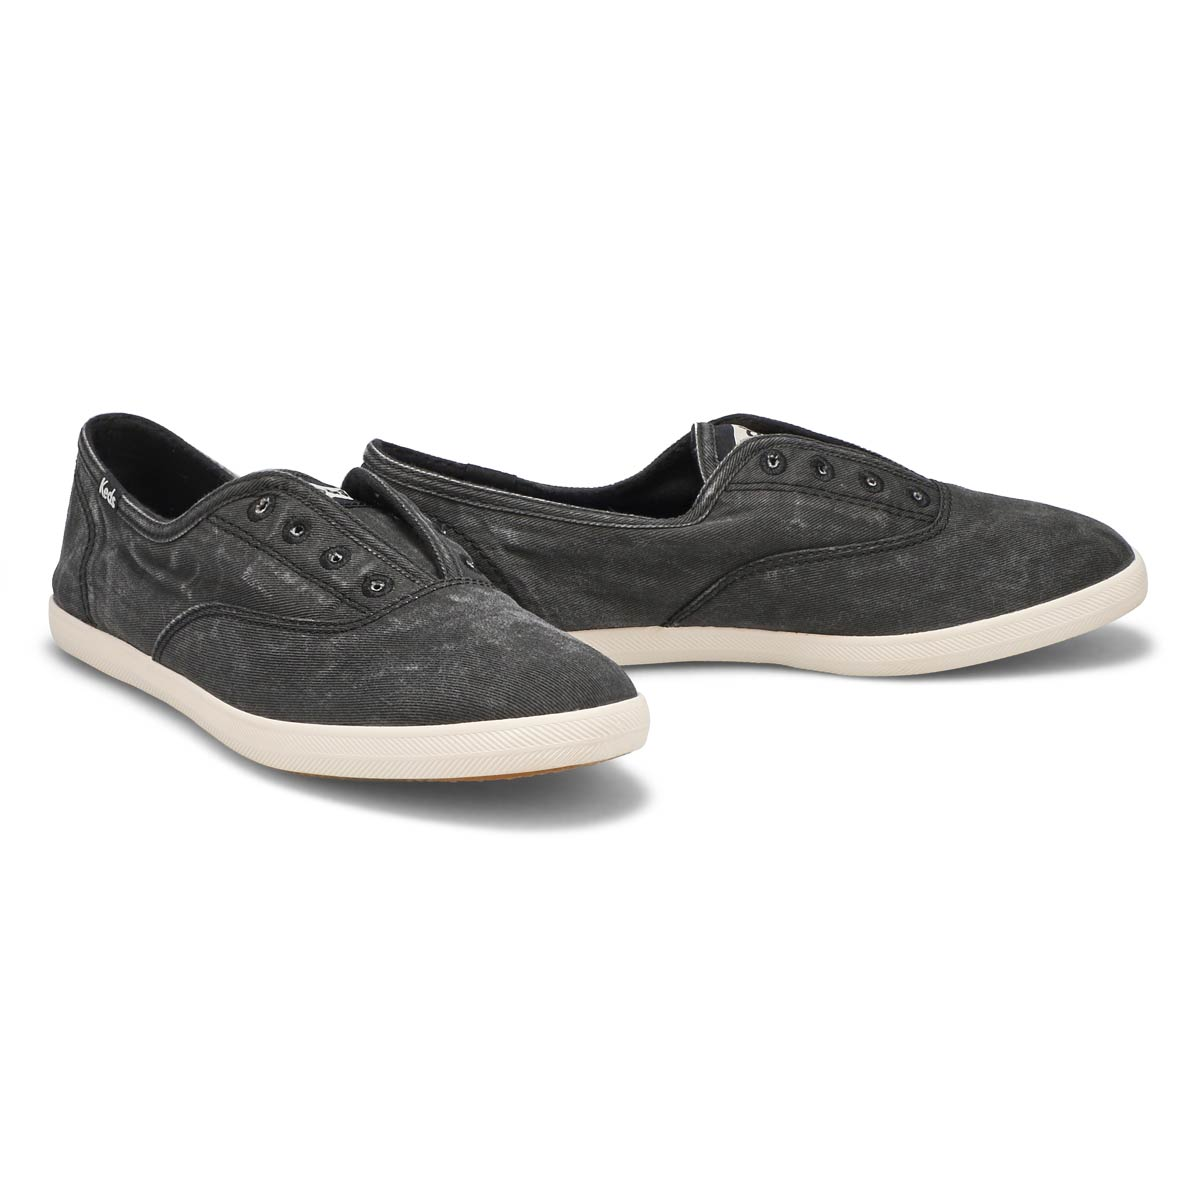 Lds Chillax charcoal fashion sneaker